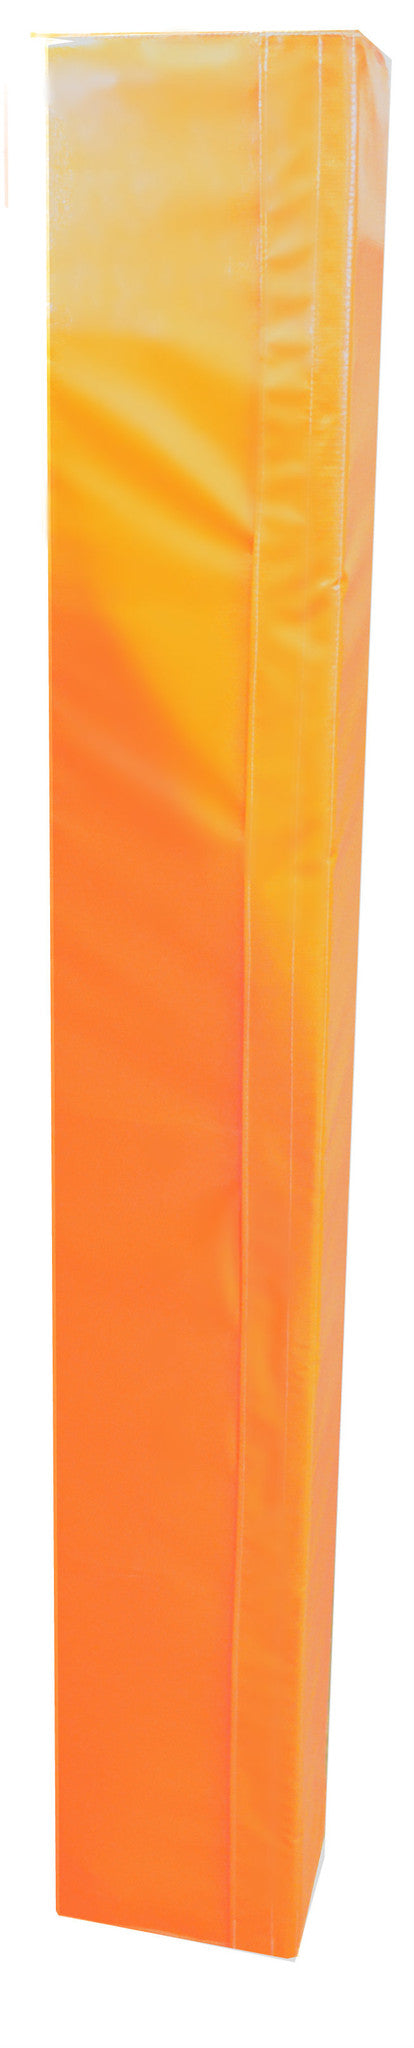 orange column pad